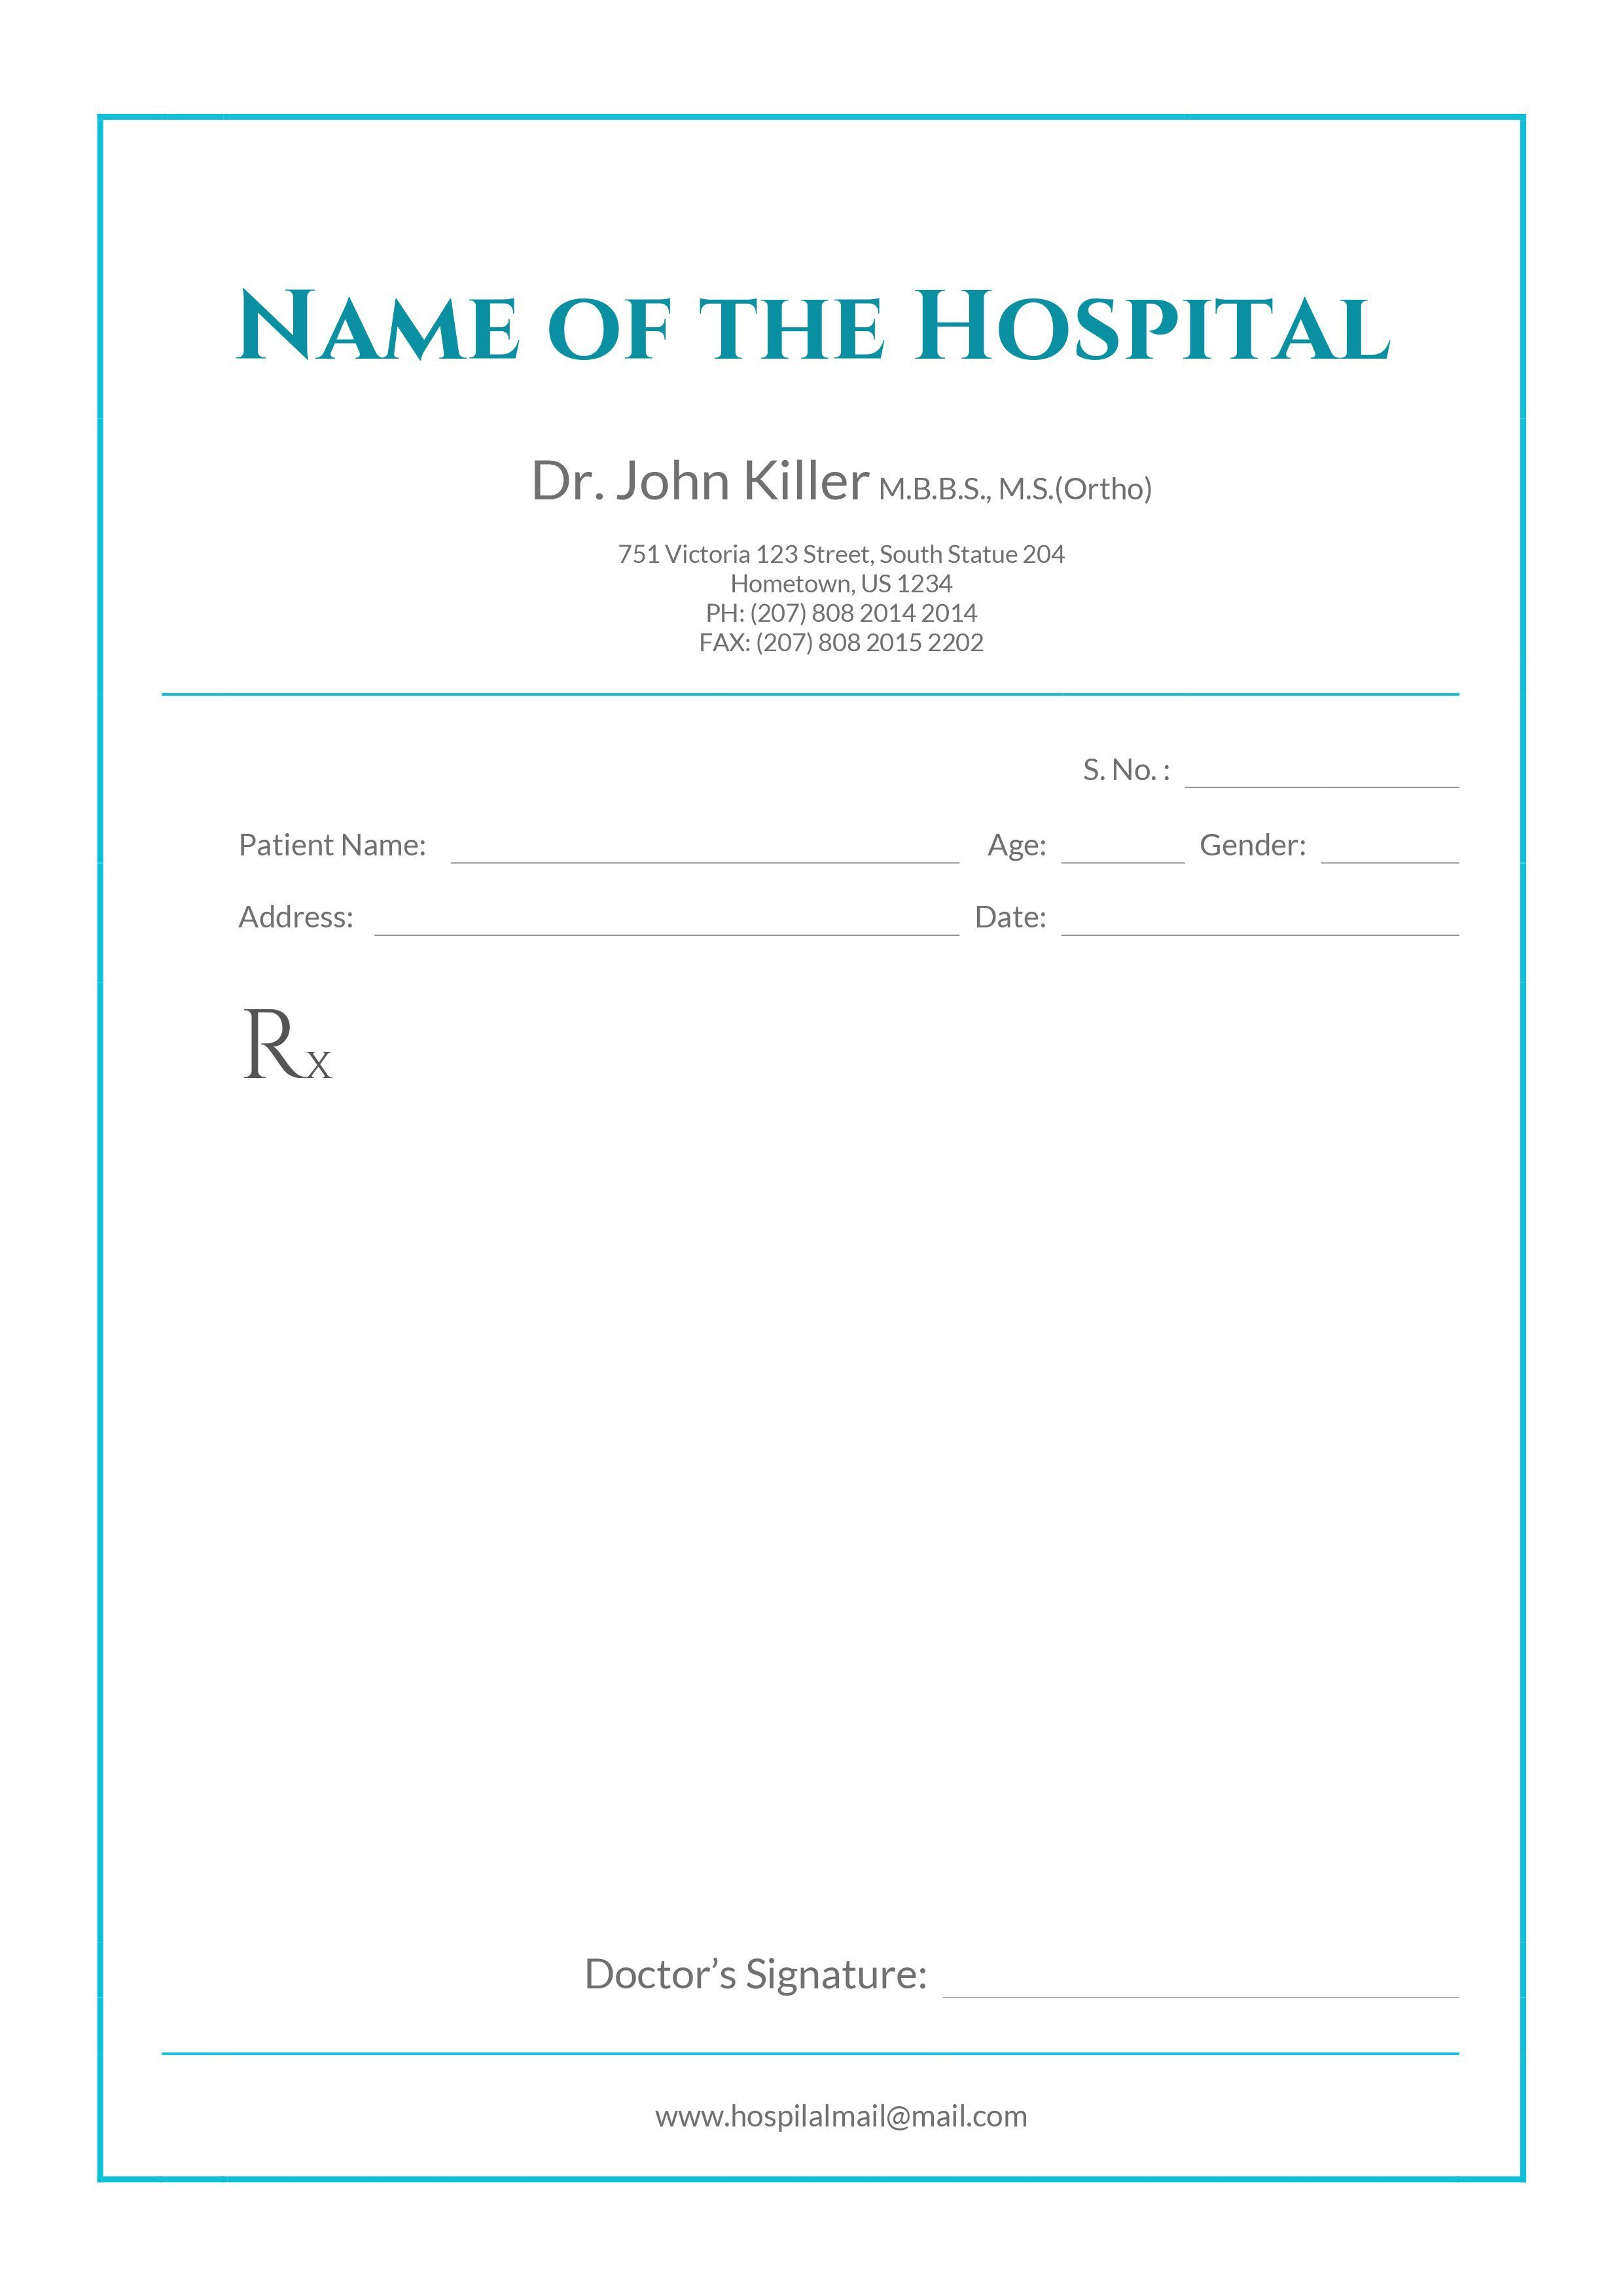 Free Medical Prescription Format Download In 2019 Throughout Doctors Prescription Template Word Doctors Note Template Medical Prescription Prescription Pad